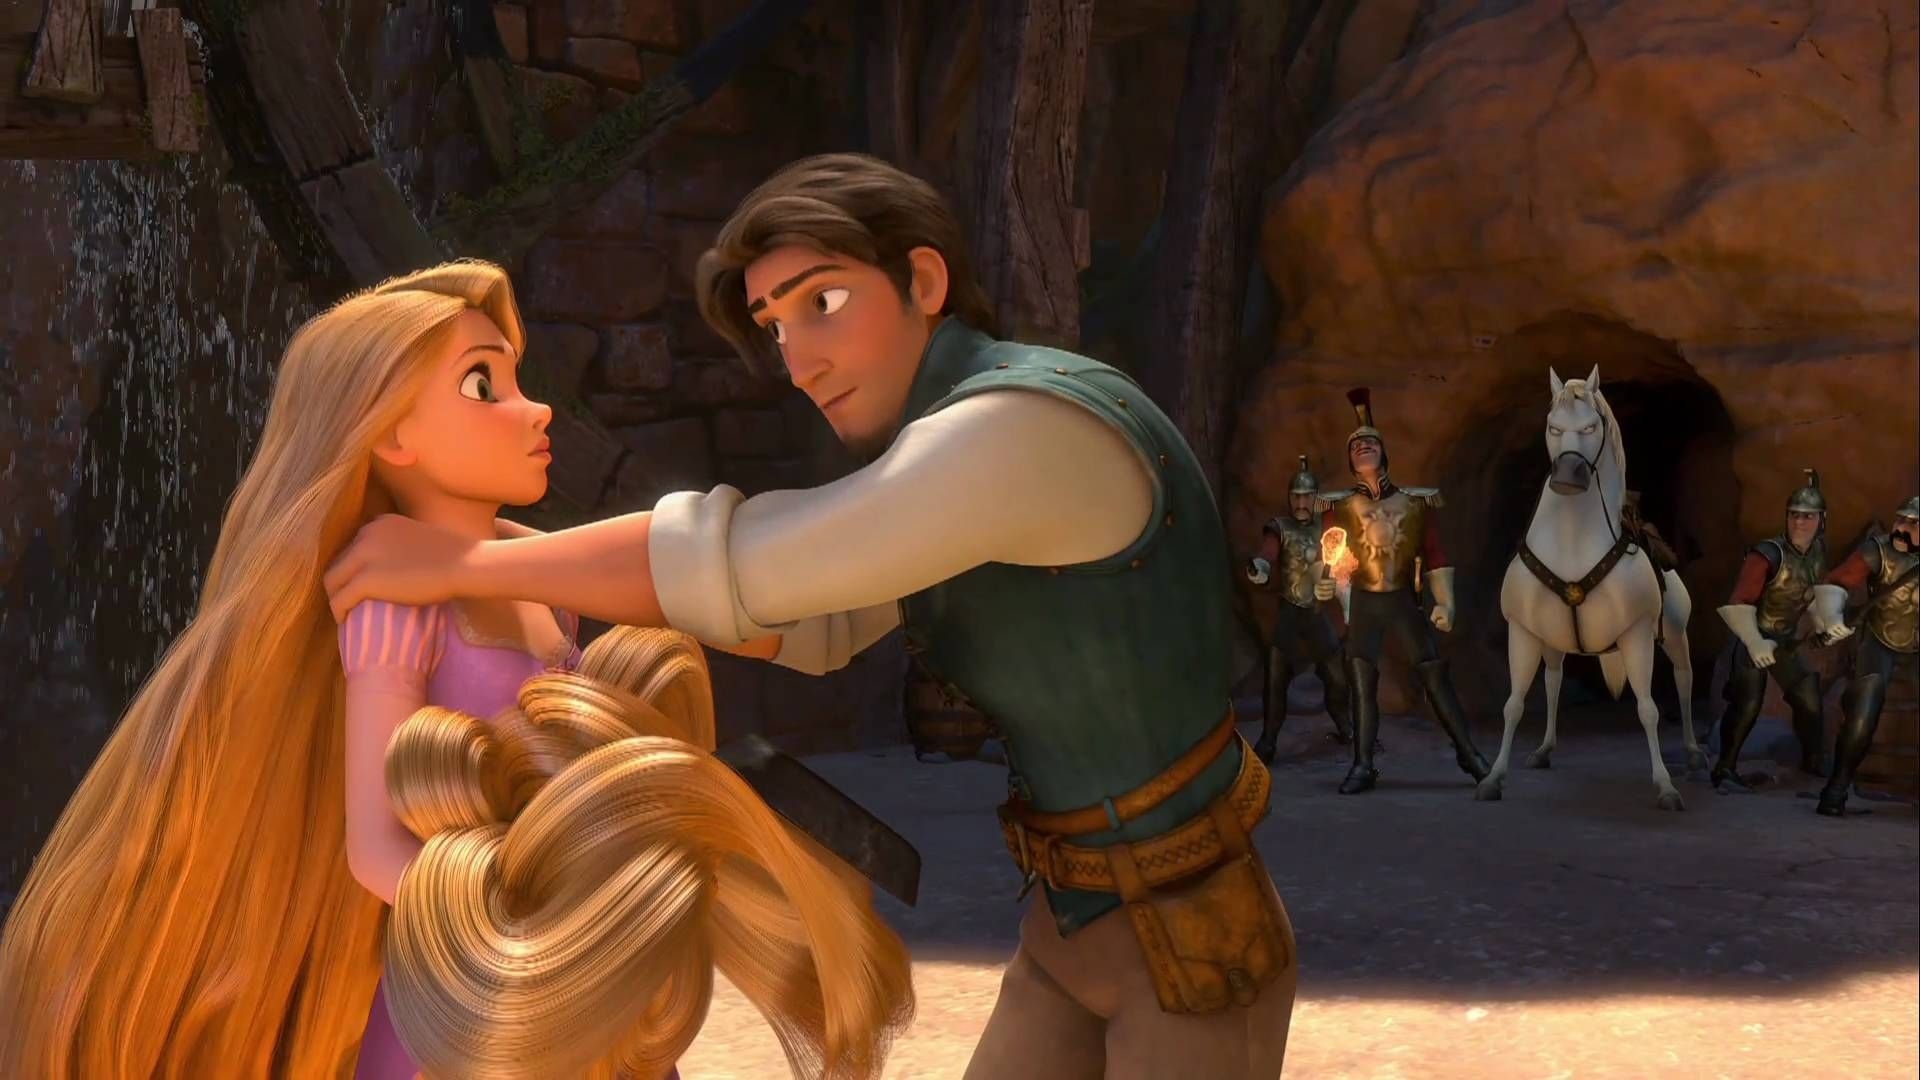 Tangled Official Trailer 2 (With images) Tangled funny